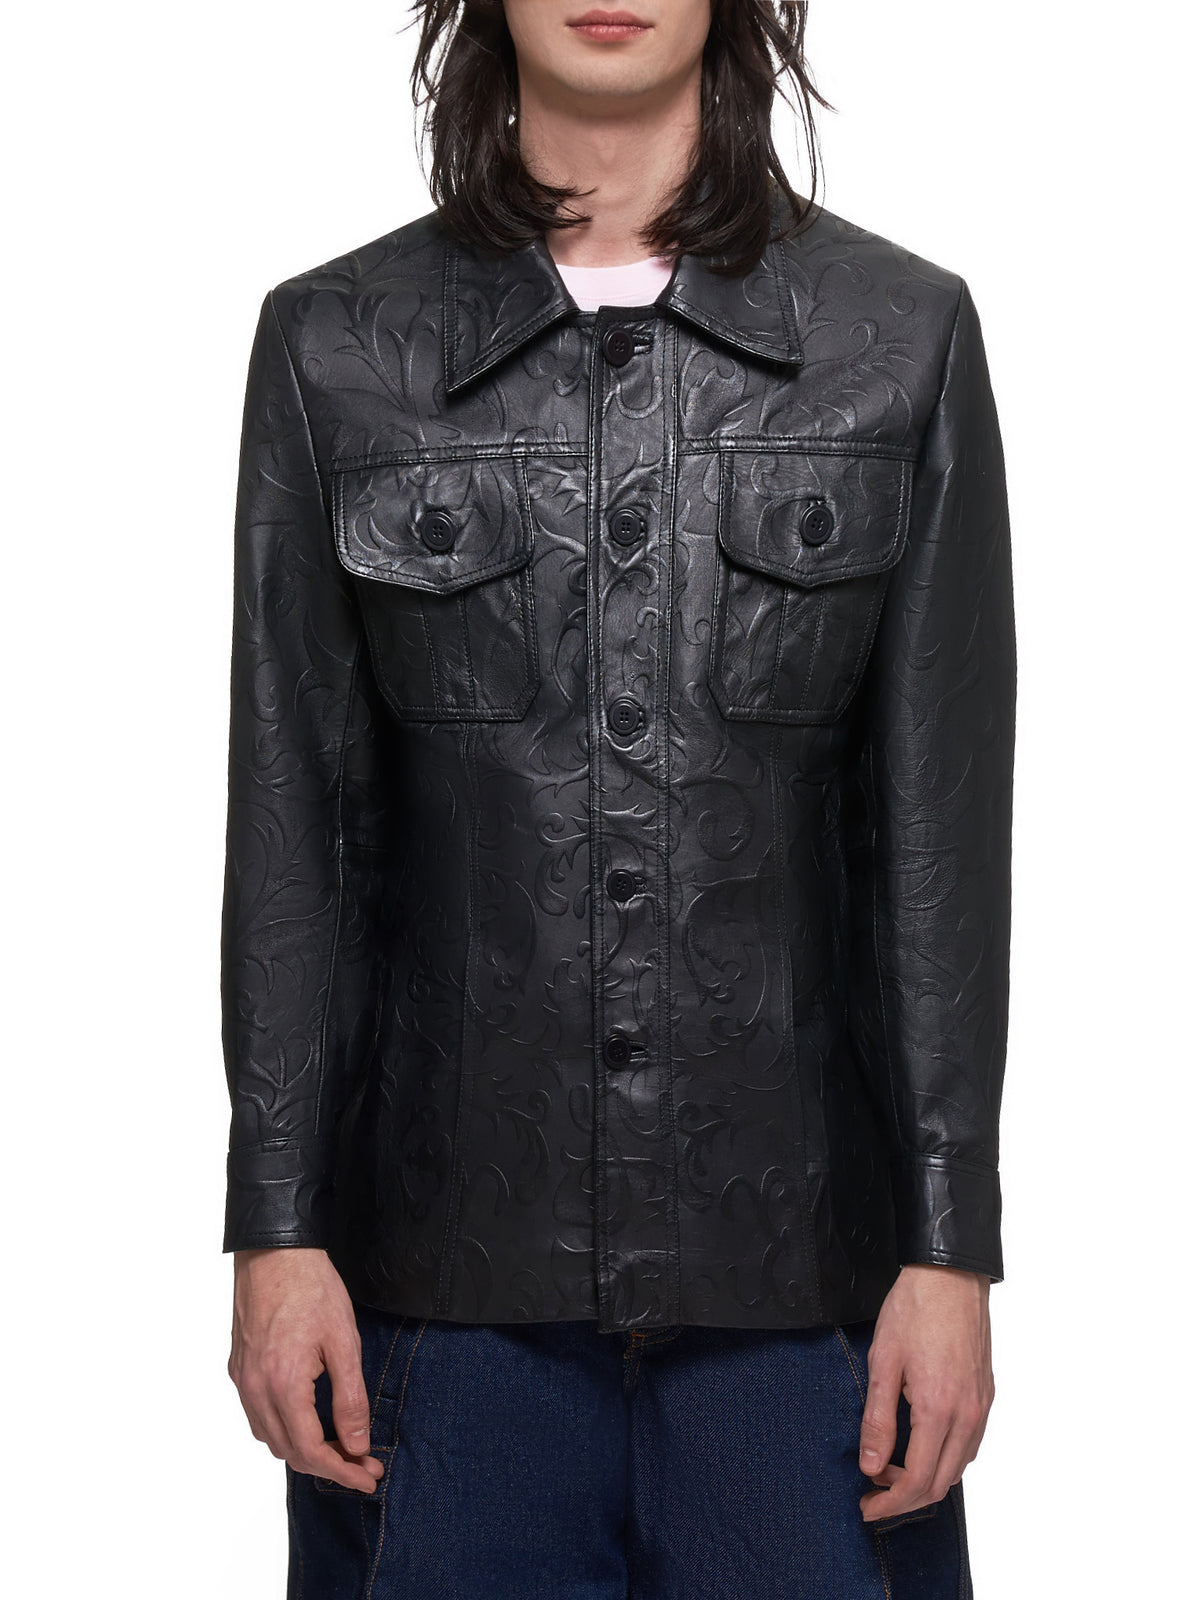 Embossed Lagunilla Shirt (EMBOSSED-09-B-01-BLACK)